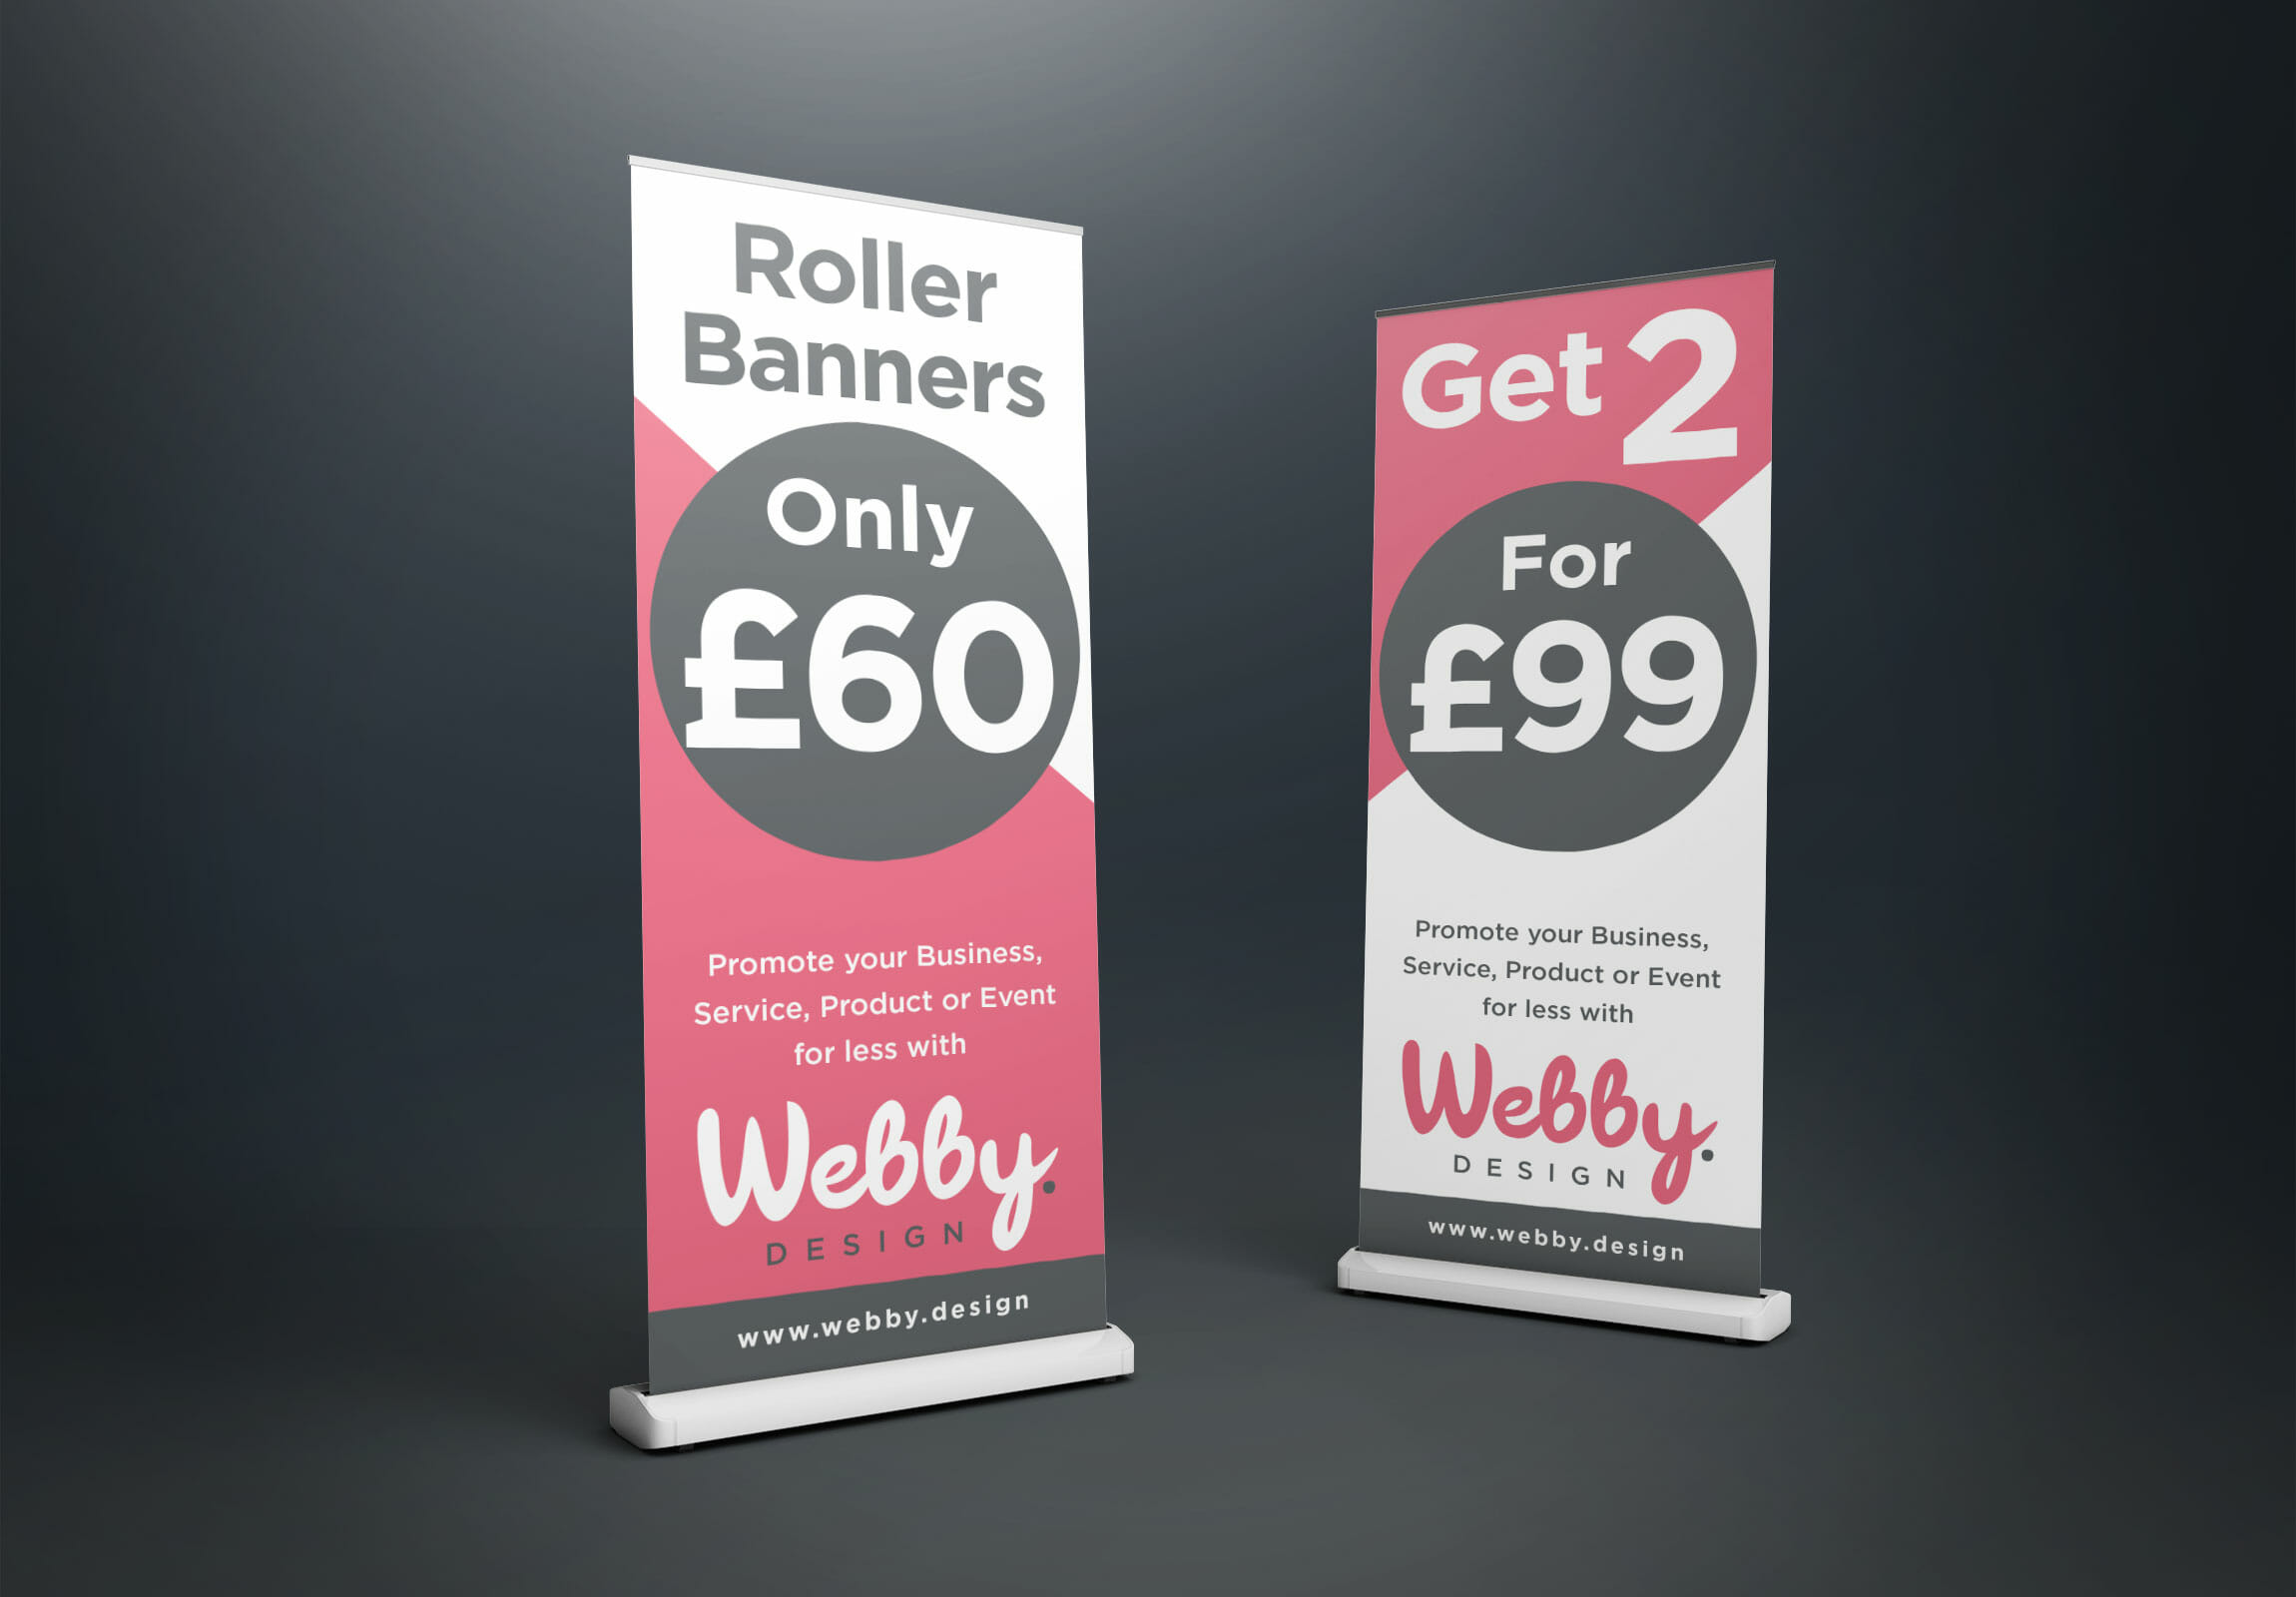 Roller Banners Pull Up Banners